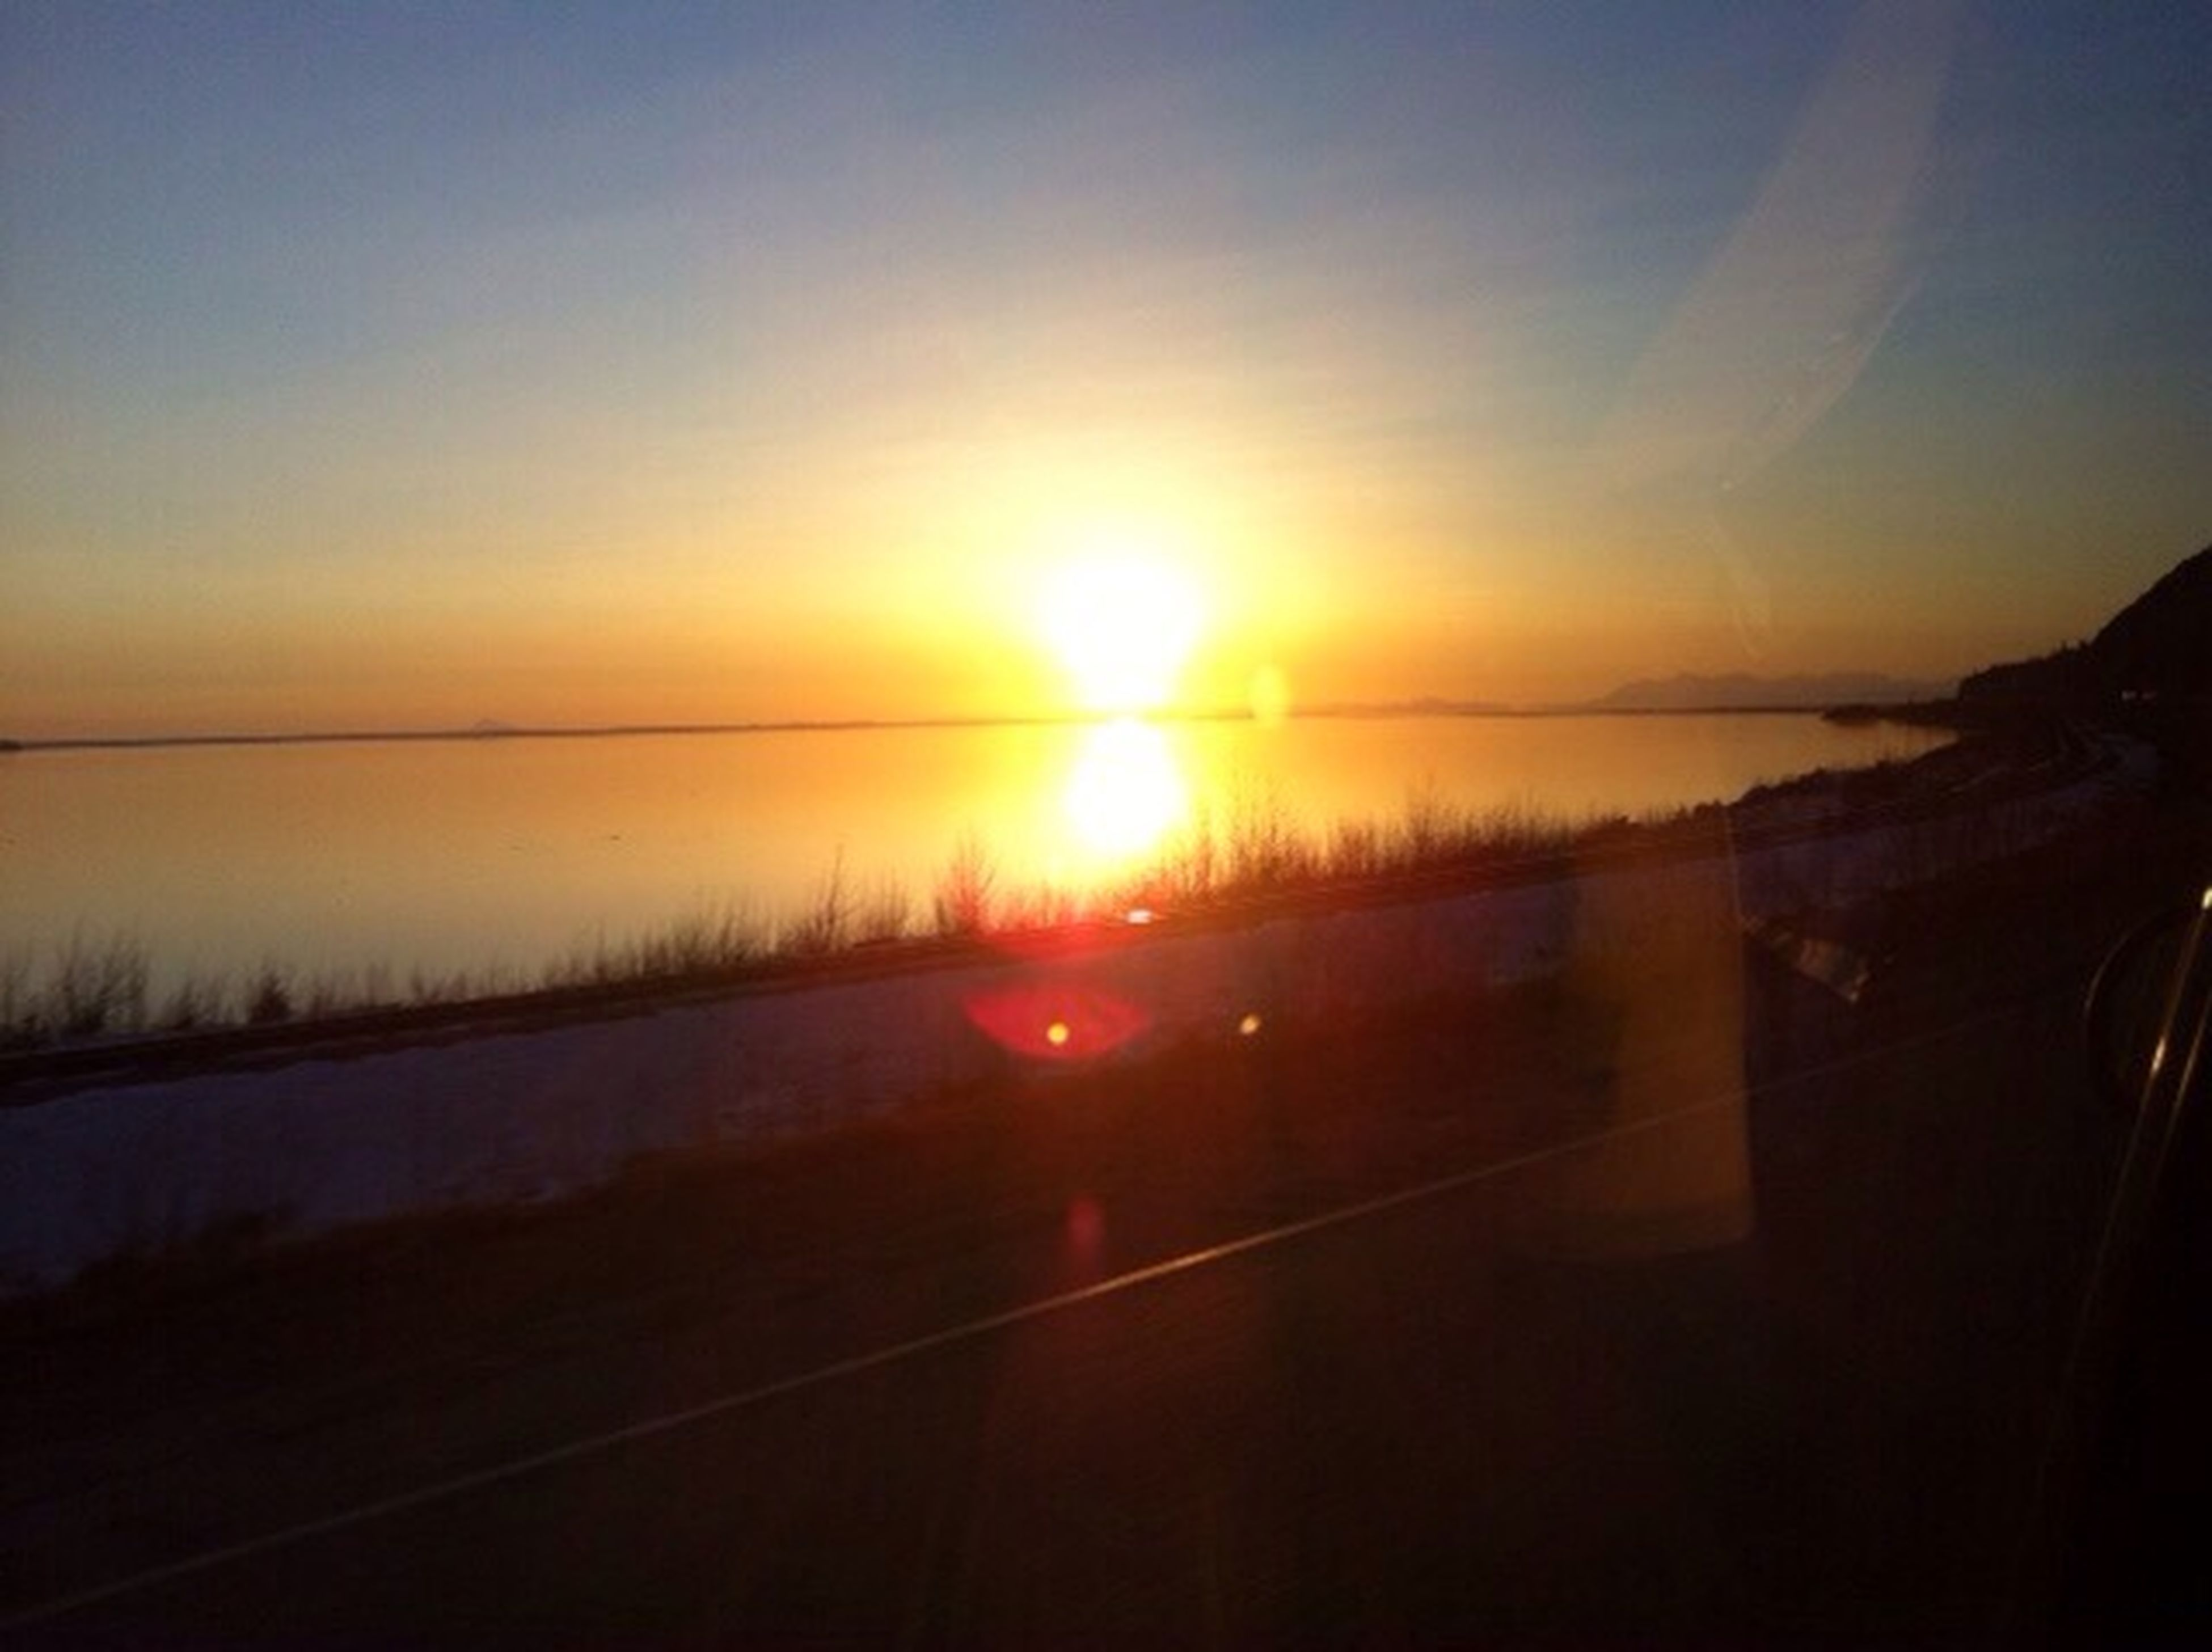 sunset, sun, transportation, sky, orange color, sunlight, scenics, tranquil scene, reflection, tranquility, road, beauty in nature, nature, sunbeam, silhouette, water, landscape, lens flare, glass - material, no people